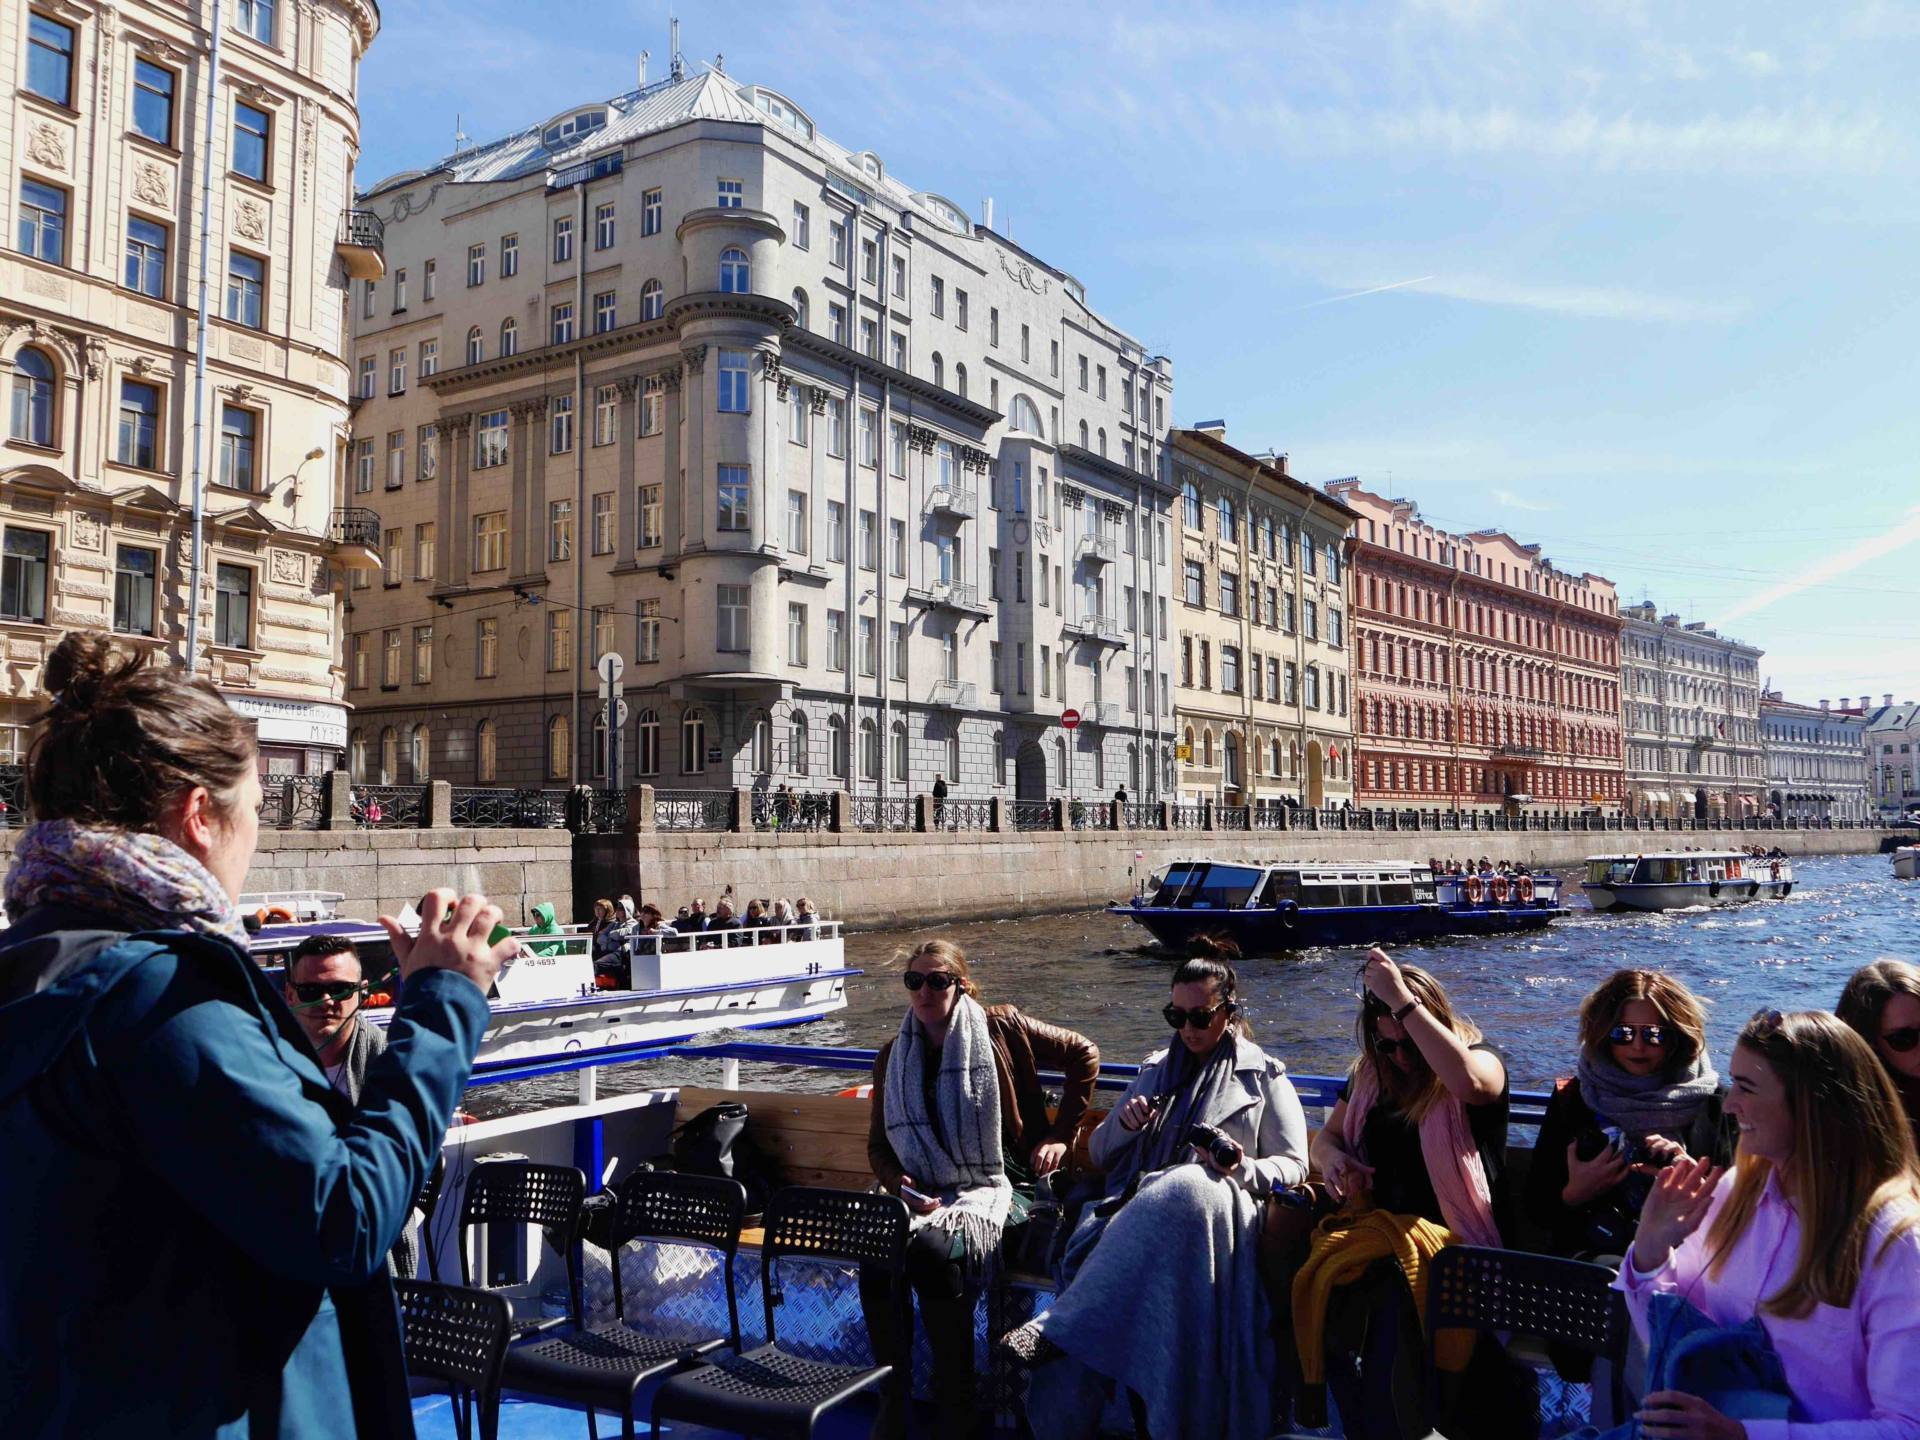 St Petersburg River Cruise Scandinavian Cruise